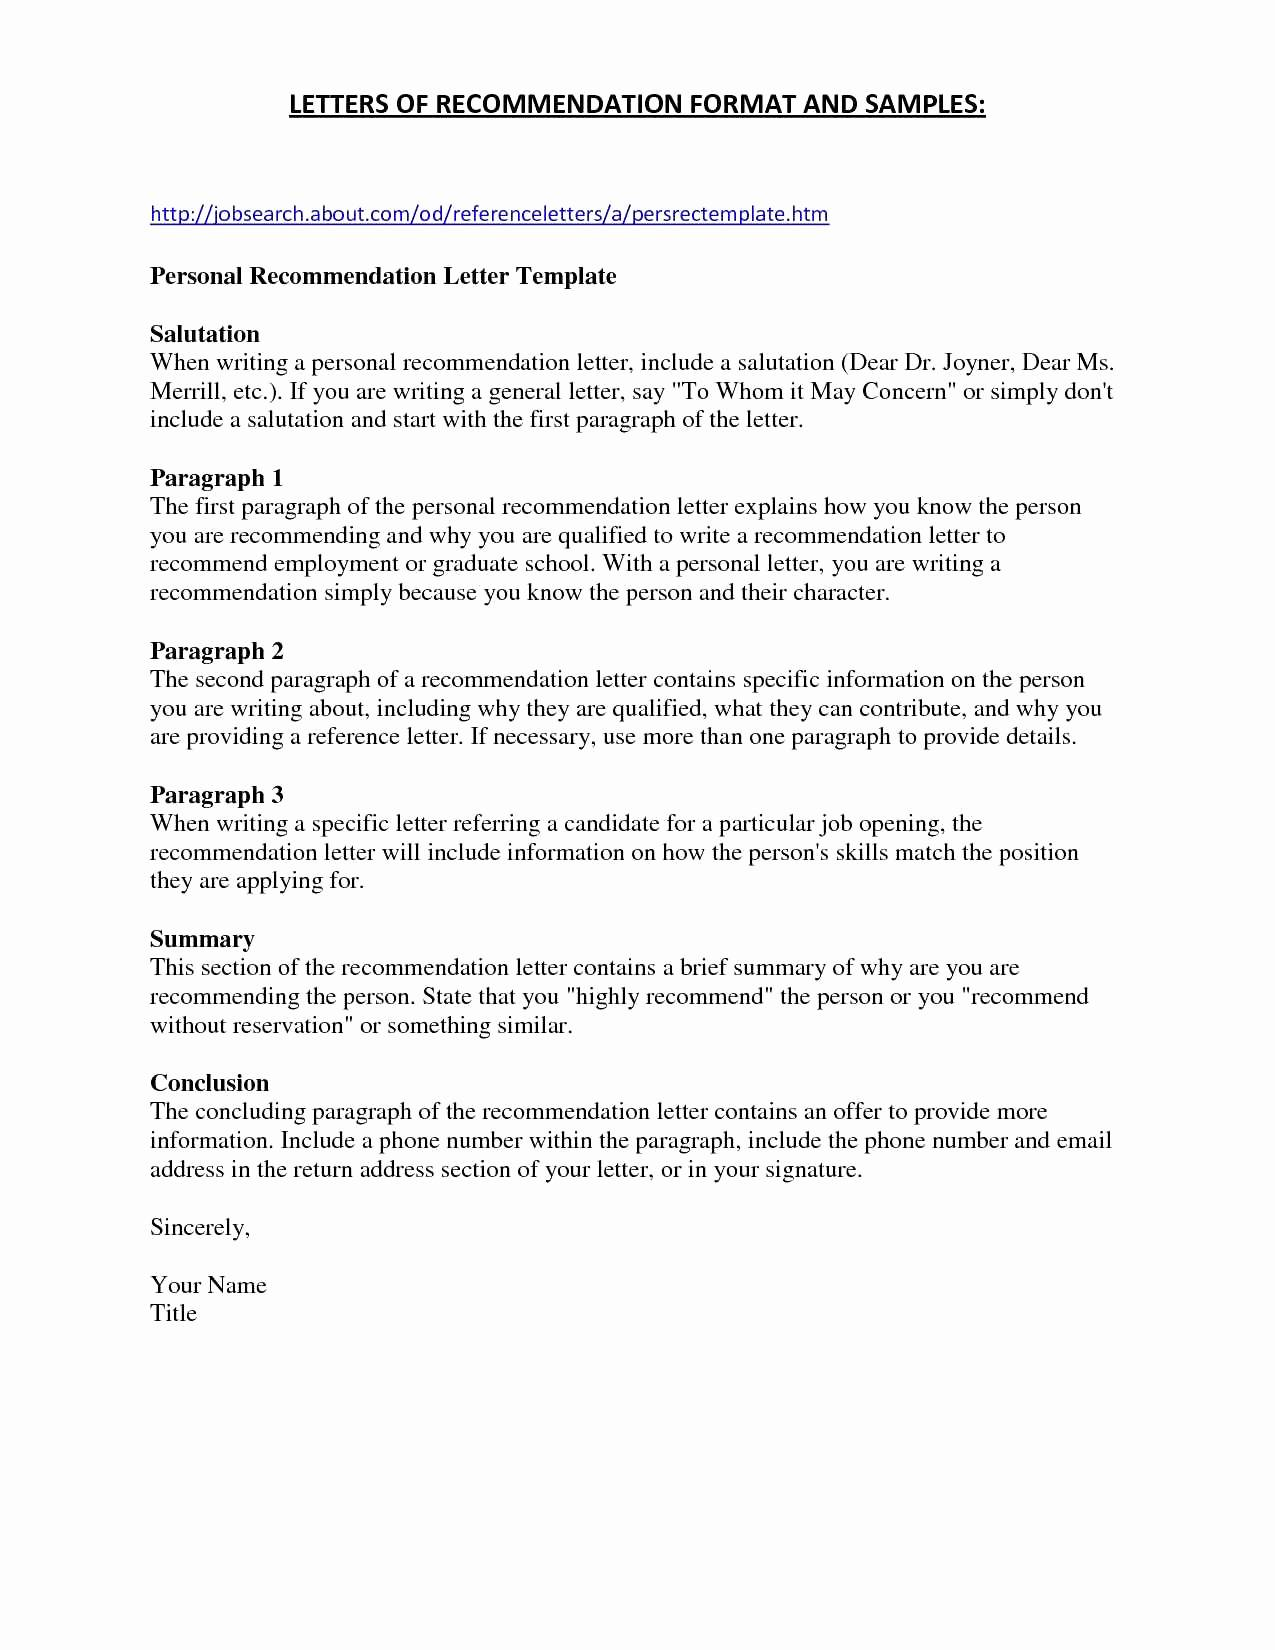 Personal Recommendation Letter Template Free - 13 Fresh What Does Recipient Mean A Cover Letter Resume